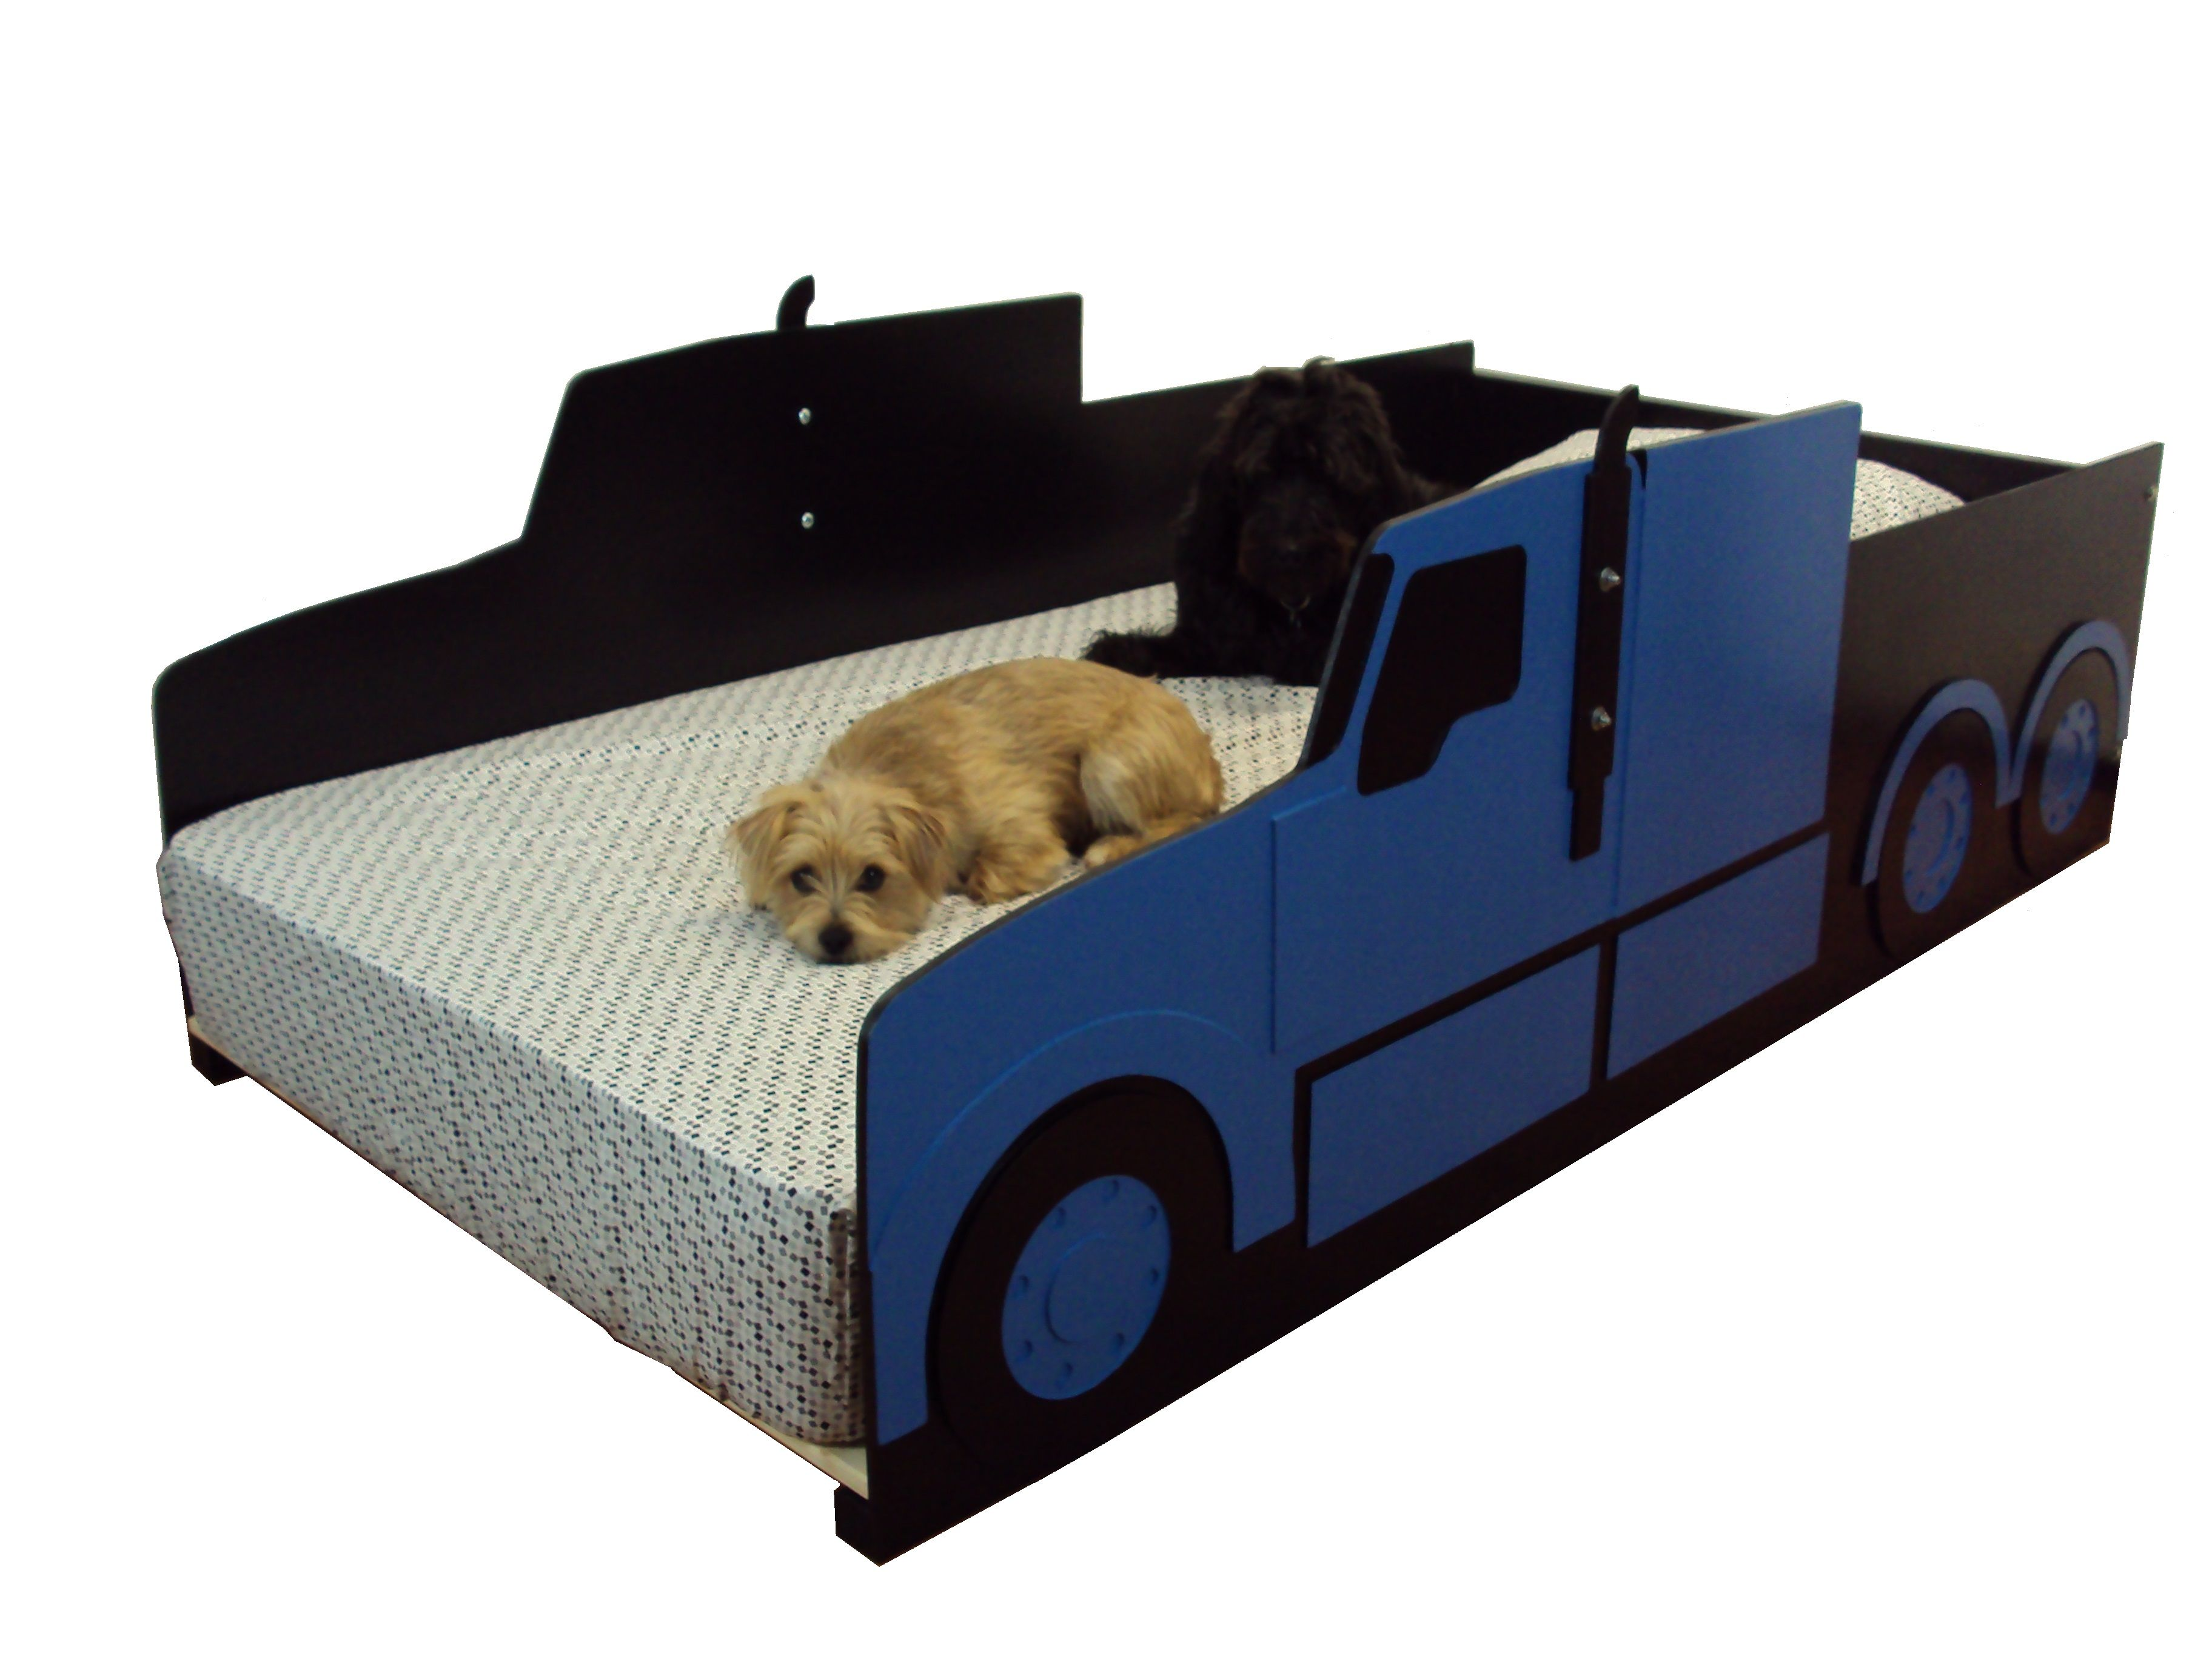 Custom Semi Tractor Truck Twin Kids Bed Frame Handcrafted Truck Themed Children S Bedroom Furniture By Tradecraft Specialties Custommade Com